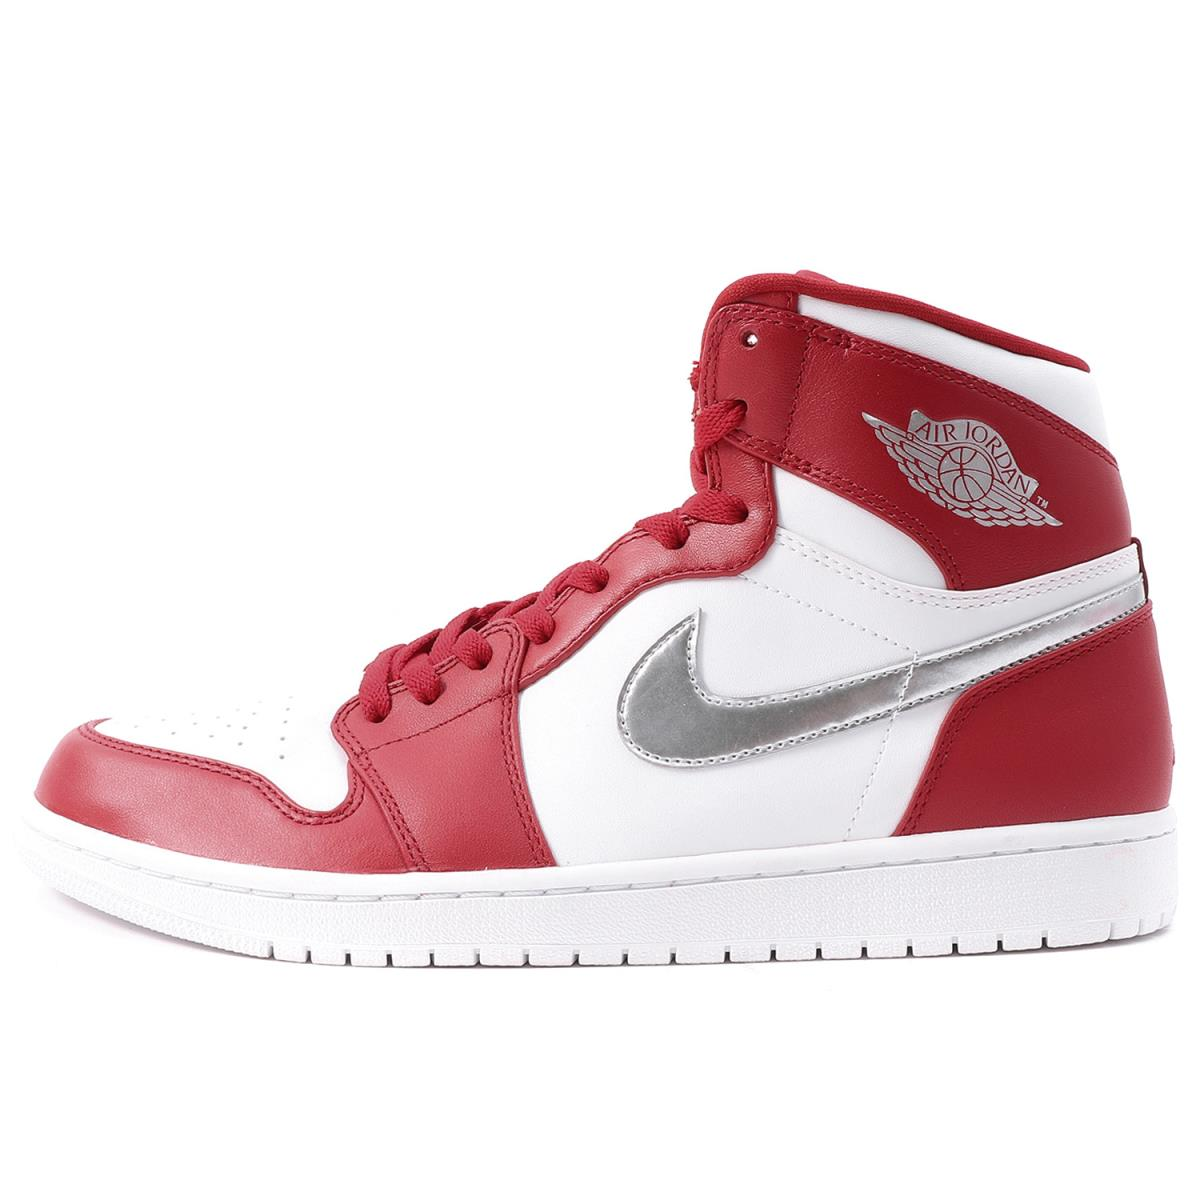 new product c84f8 4175e AIR JORDAN 1 RETRO HIGH GYM RED (332,550-602) gym red X white US11(29cm)  made in NIKE (Nike) 2016